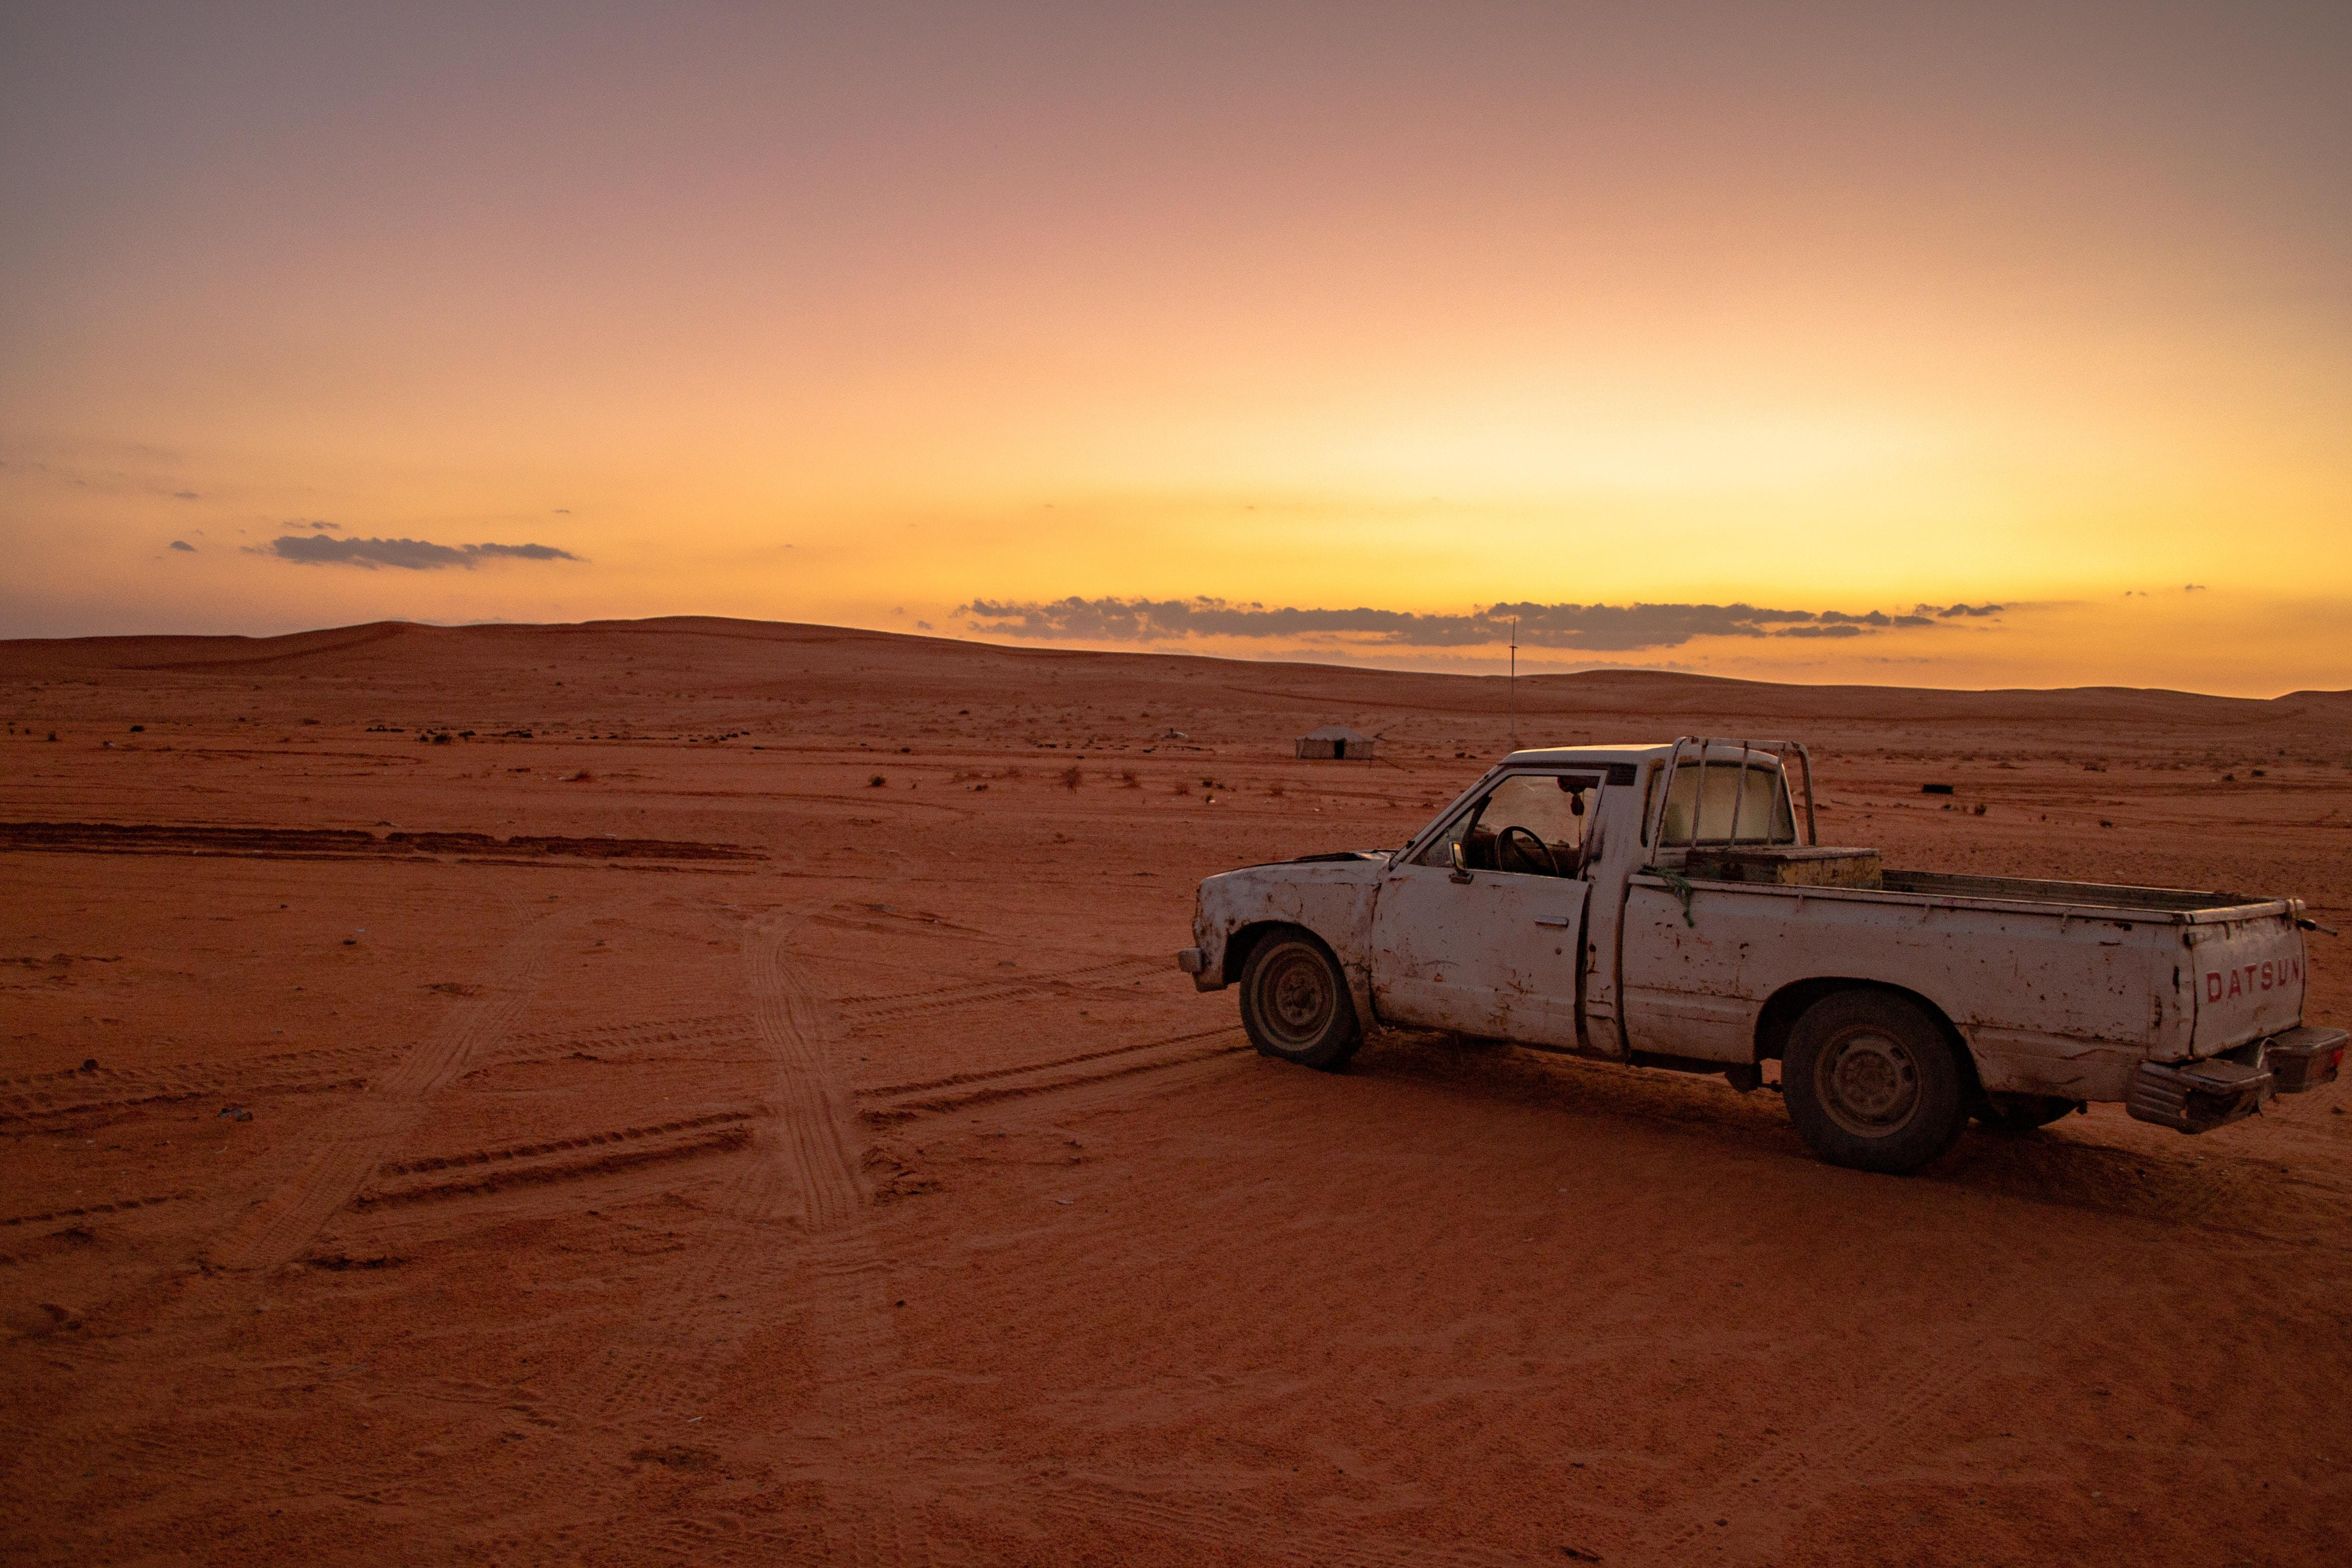 Pickup Truck in the Desert